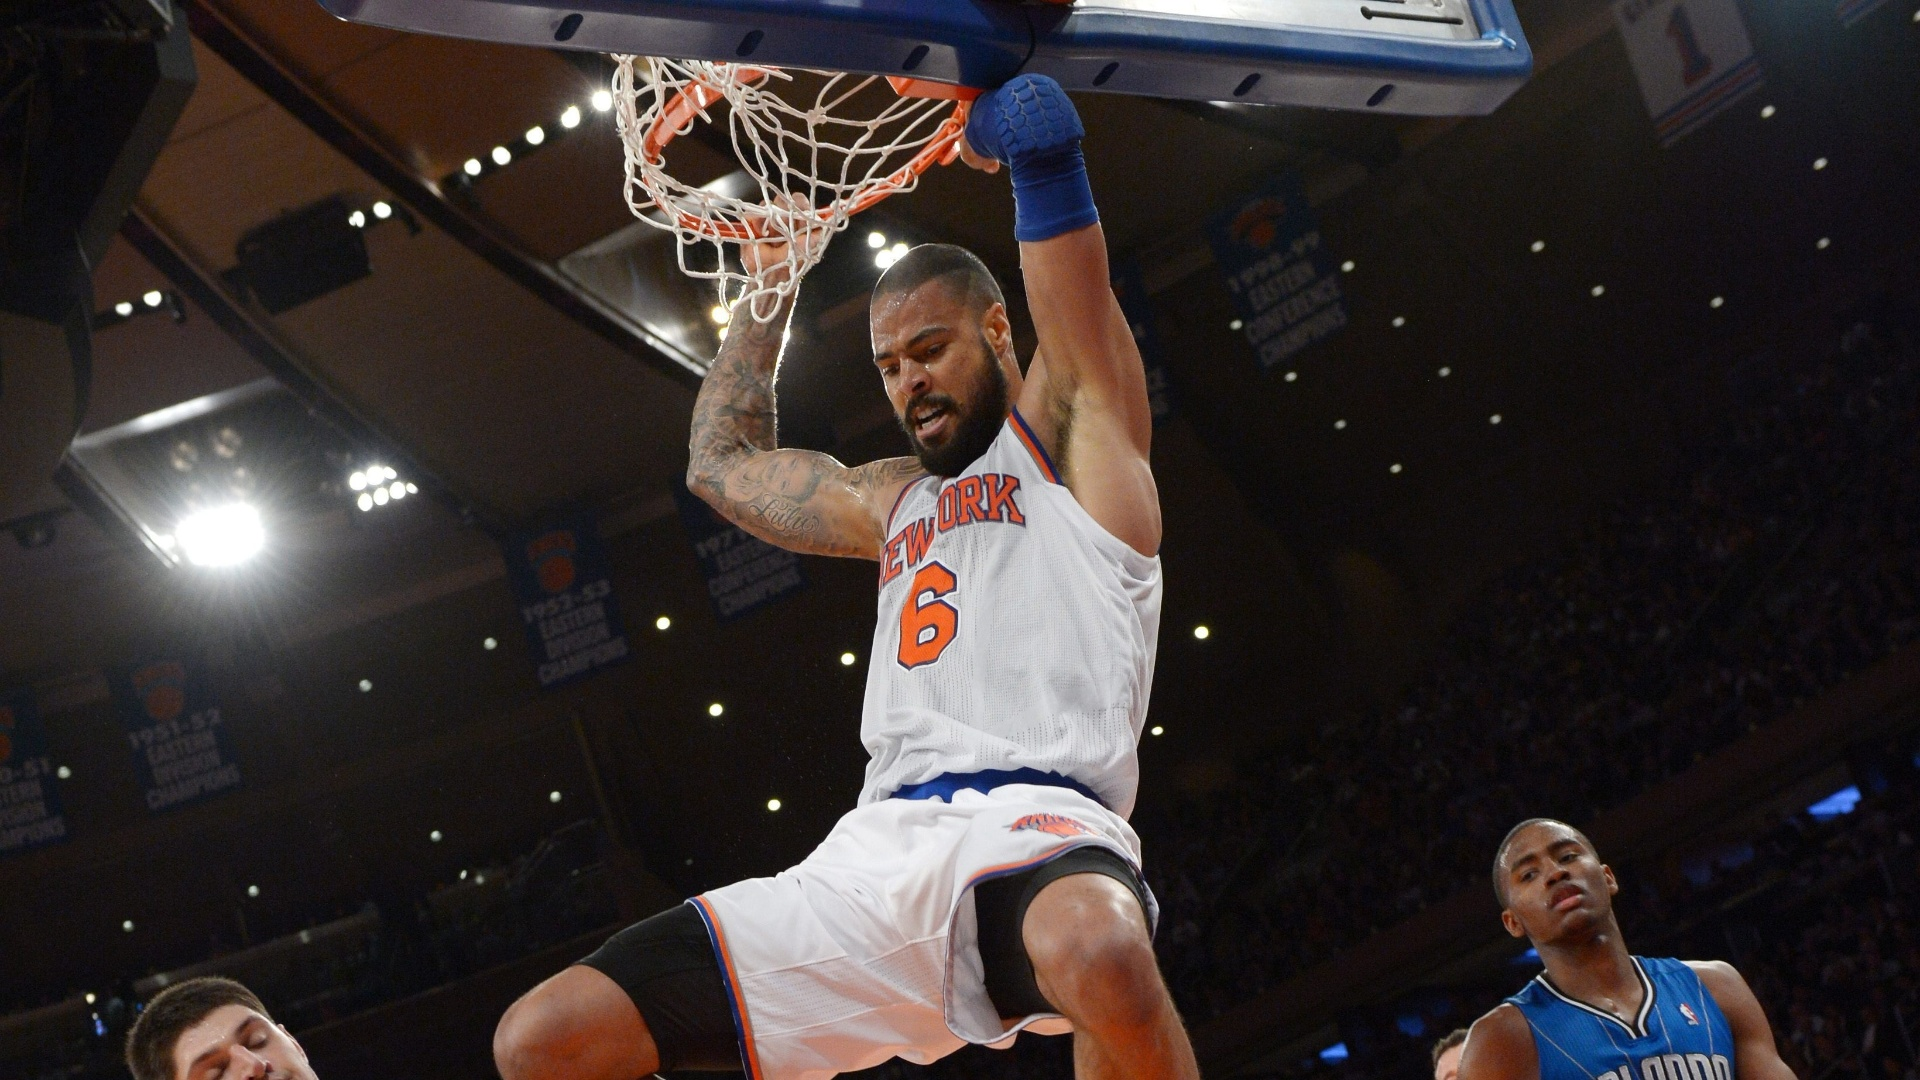 30.jan.2013 - Tyson Chandler converte enterrada para o New York Knicks em vitória sobre o Orlando Magic